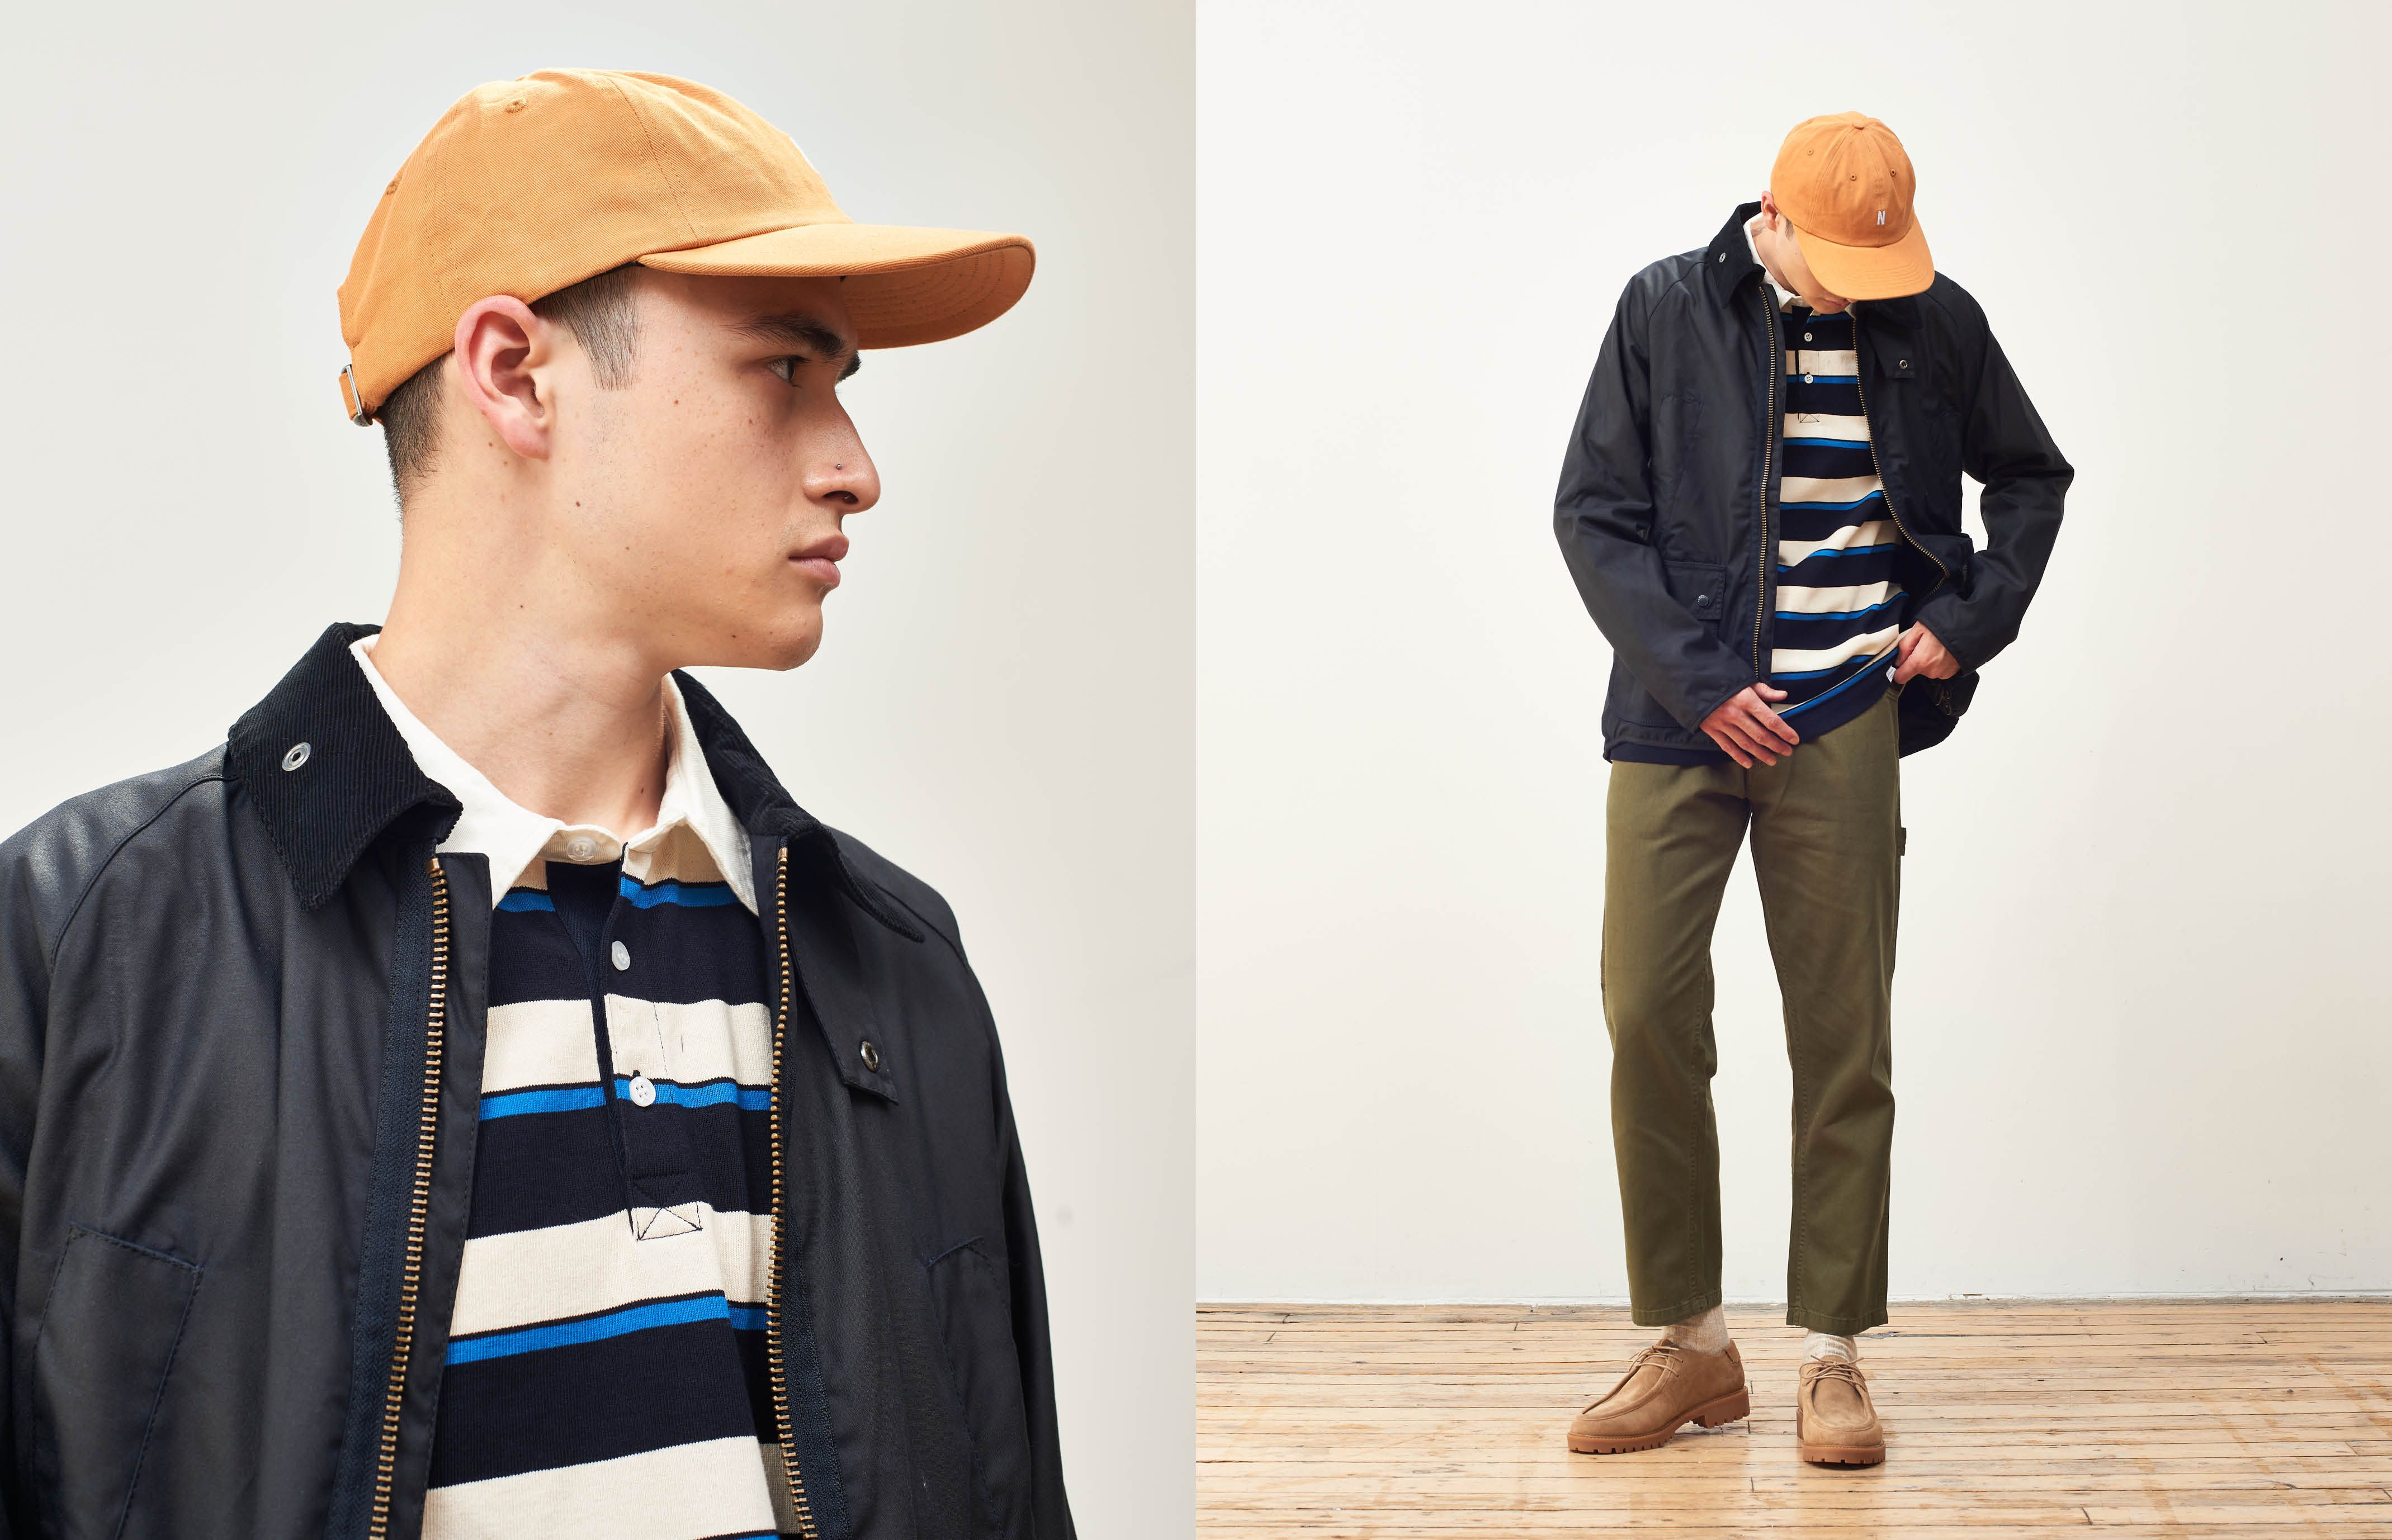 A fresh way to wear a heritage jacket